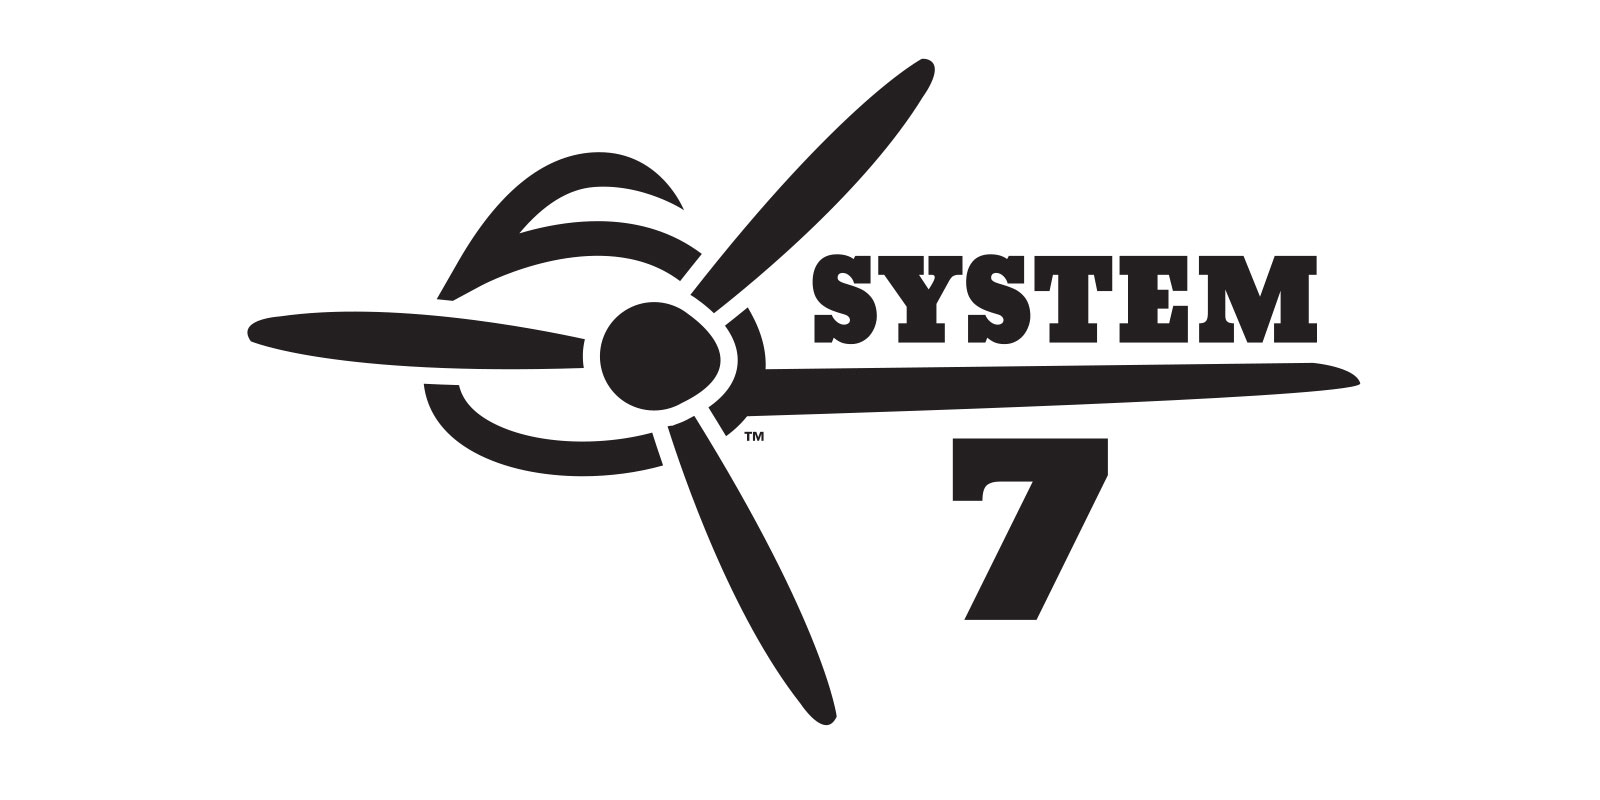 Image of the final dark-on-light logo version created for the Superflite System 7 aircraft covering system